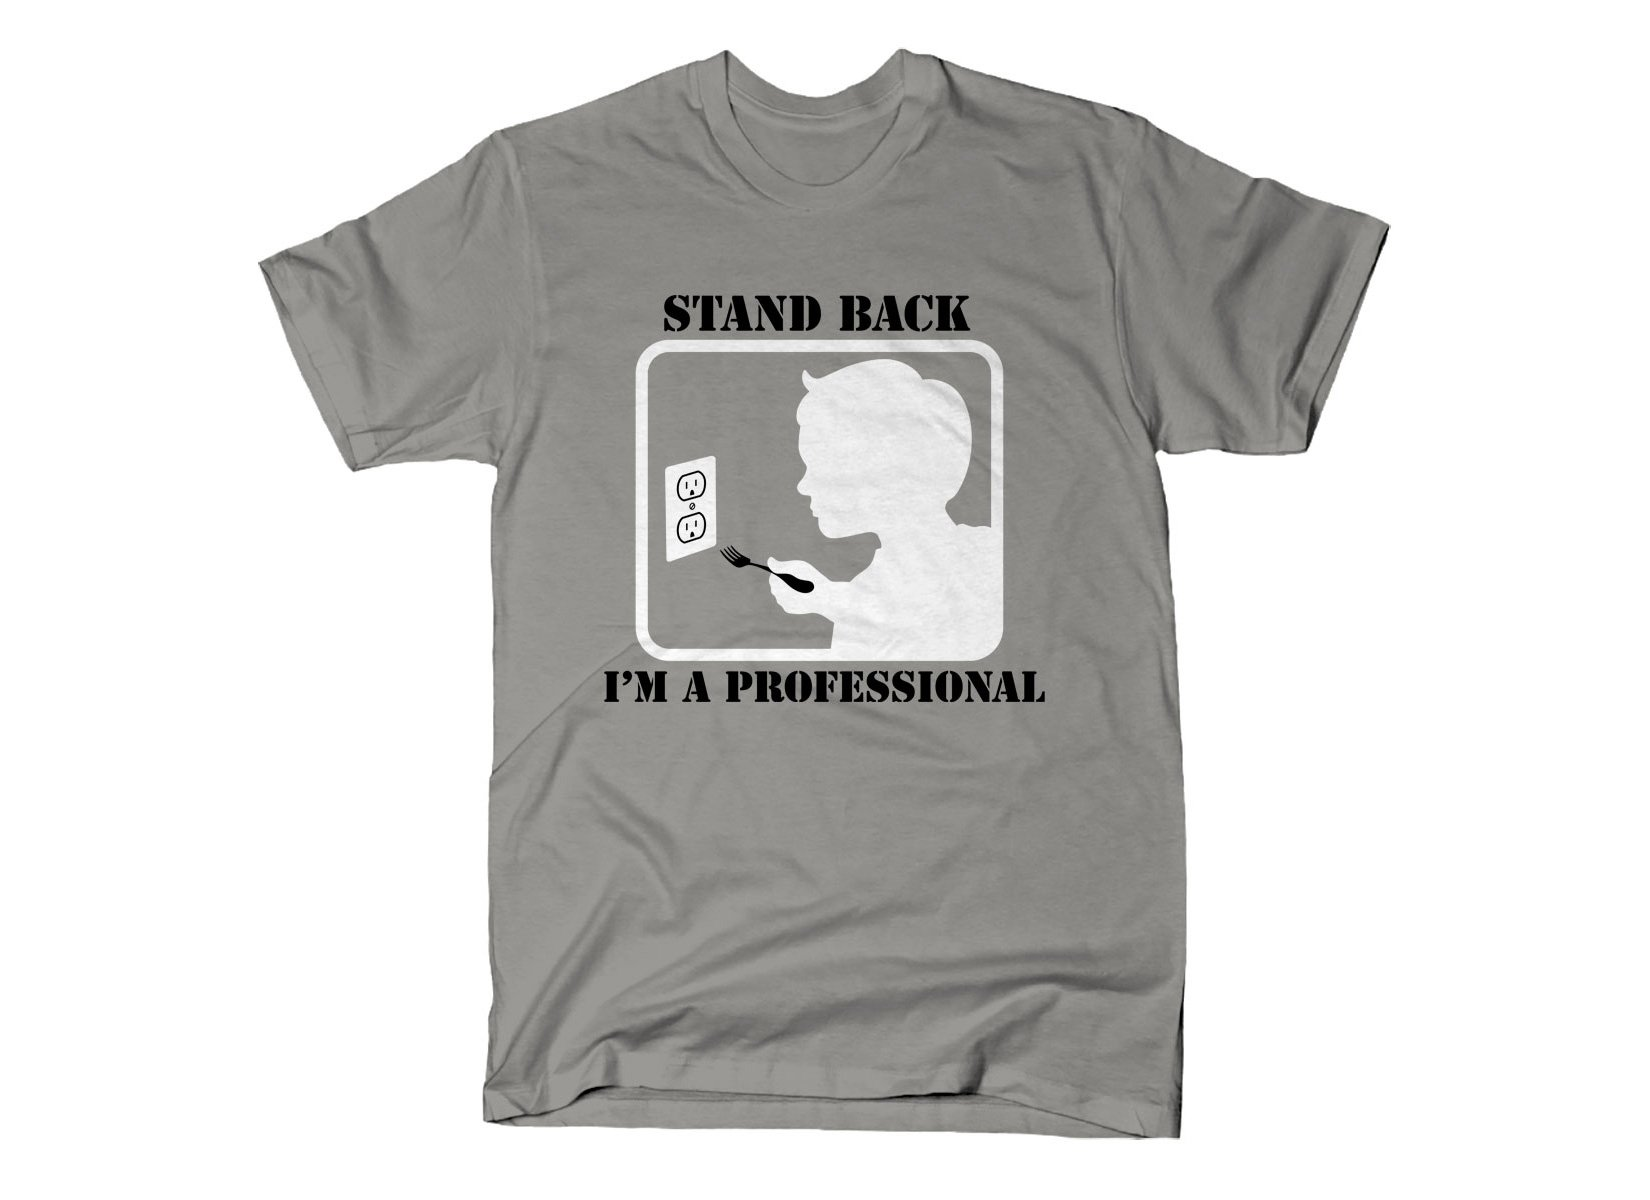 Stand Back, I'm A Professional on Mens T-Shirt